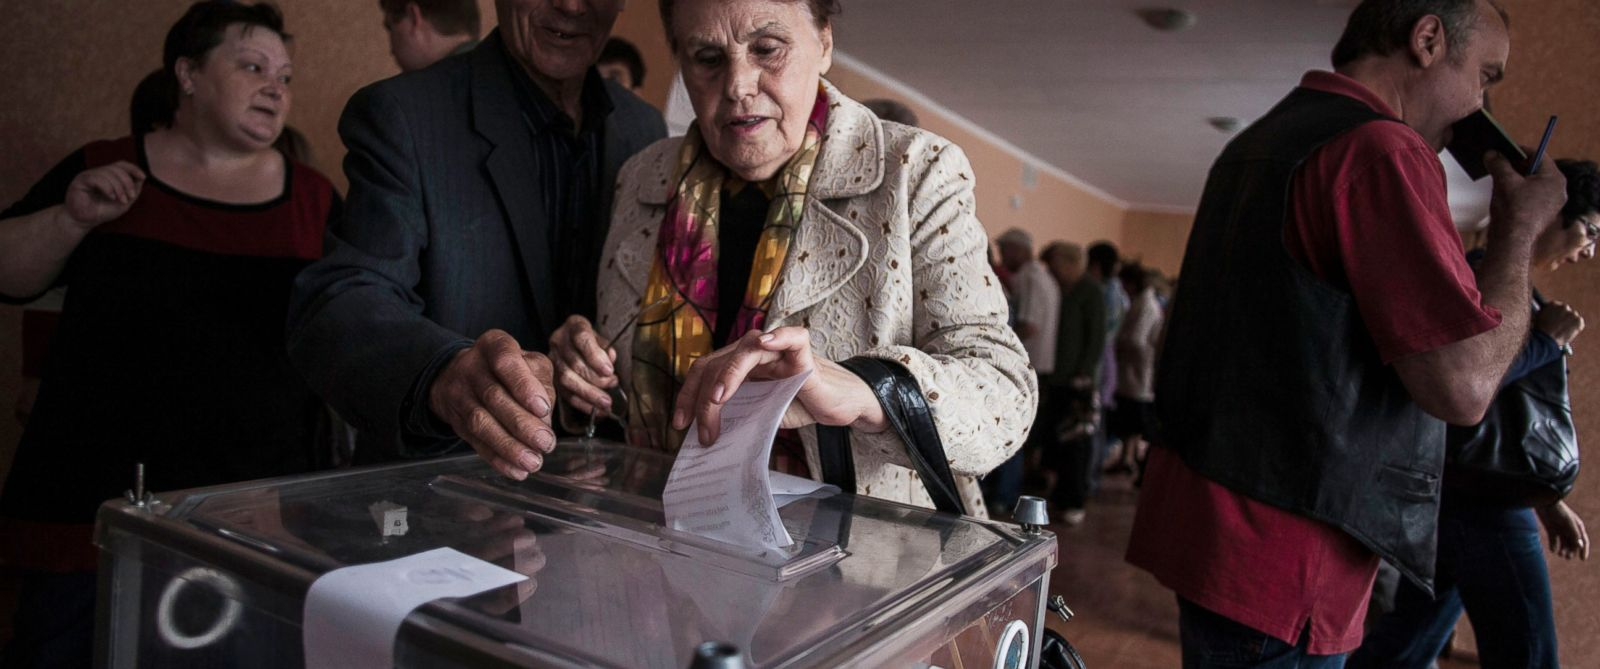 PHOTO: A Ukrainian woman casts her vote at a polling station in the Budennovskiy district, outskirts of Donetsk, Ukraine, Sunday, May 11, 2014.